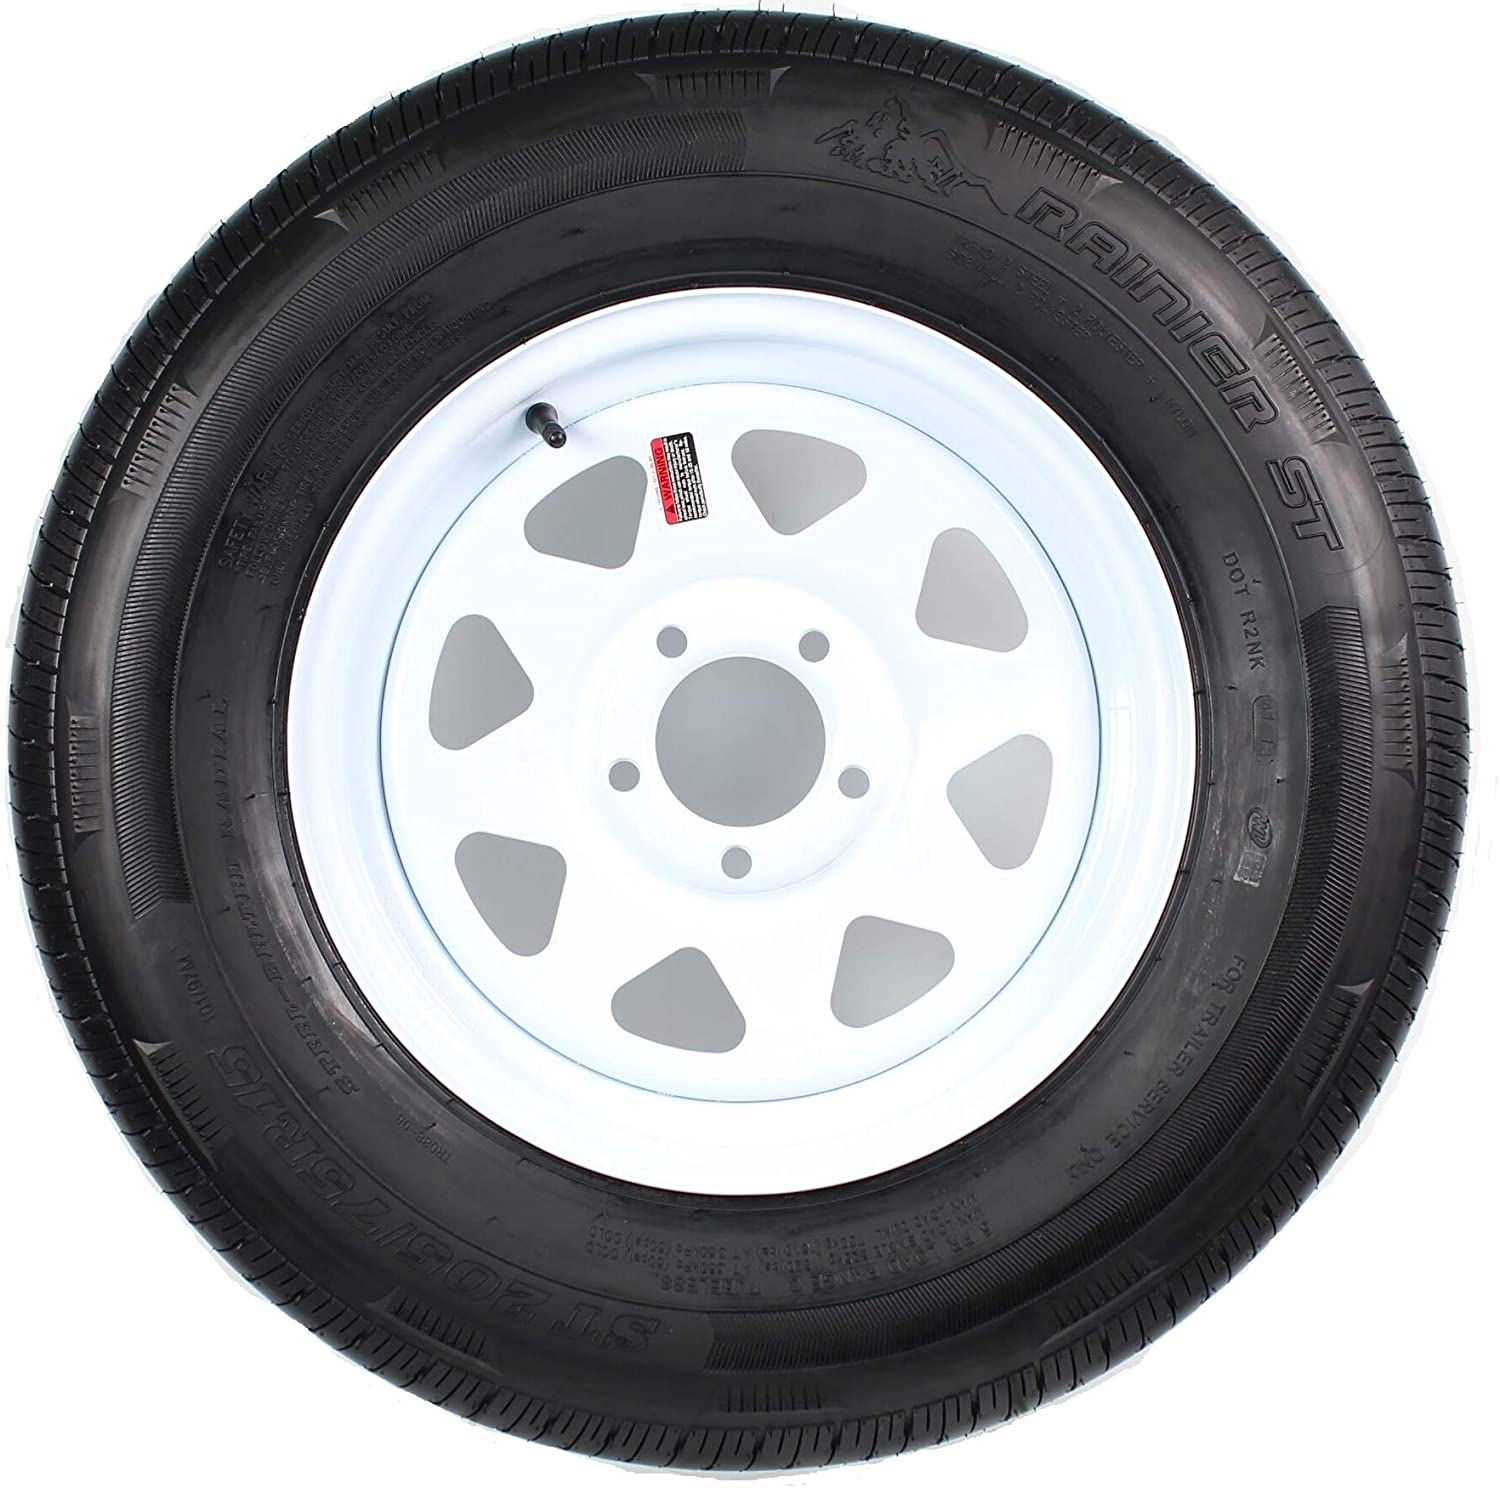 Radial Trailer Tire On White Rim ST225/75R15 Load D 5 Lug On 4.5 Spoke Wheel